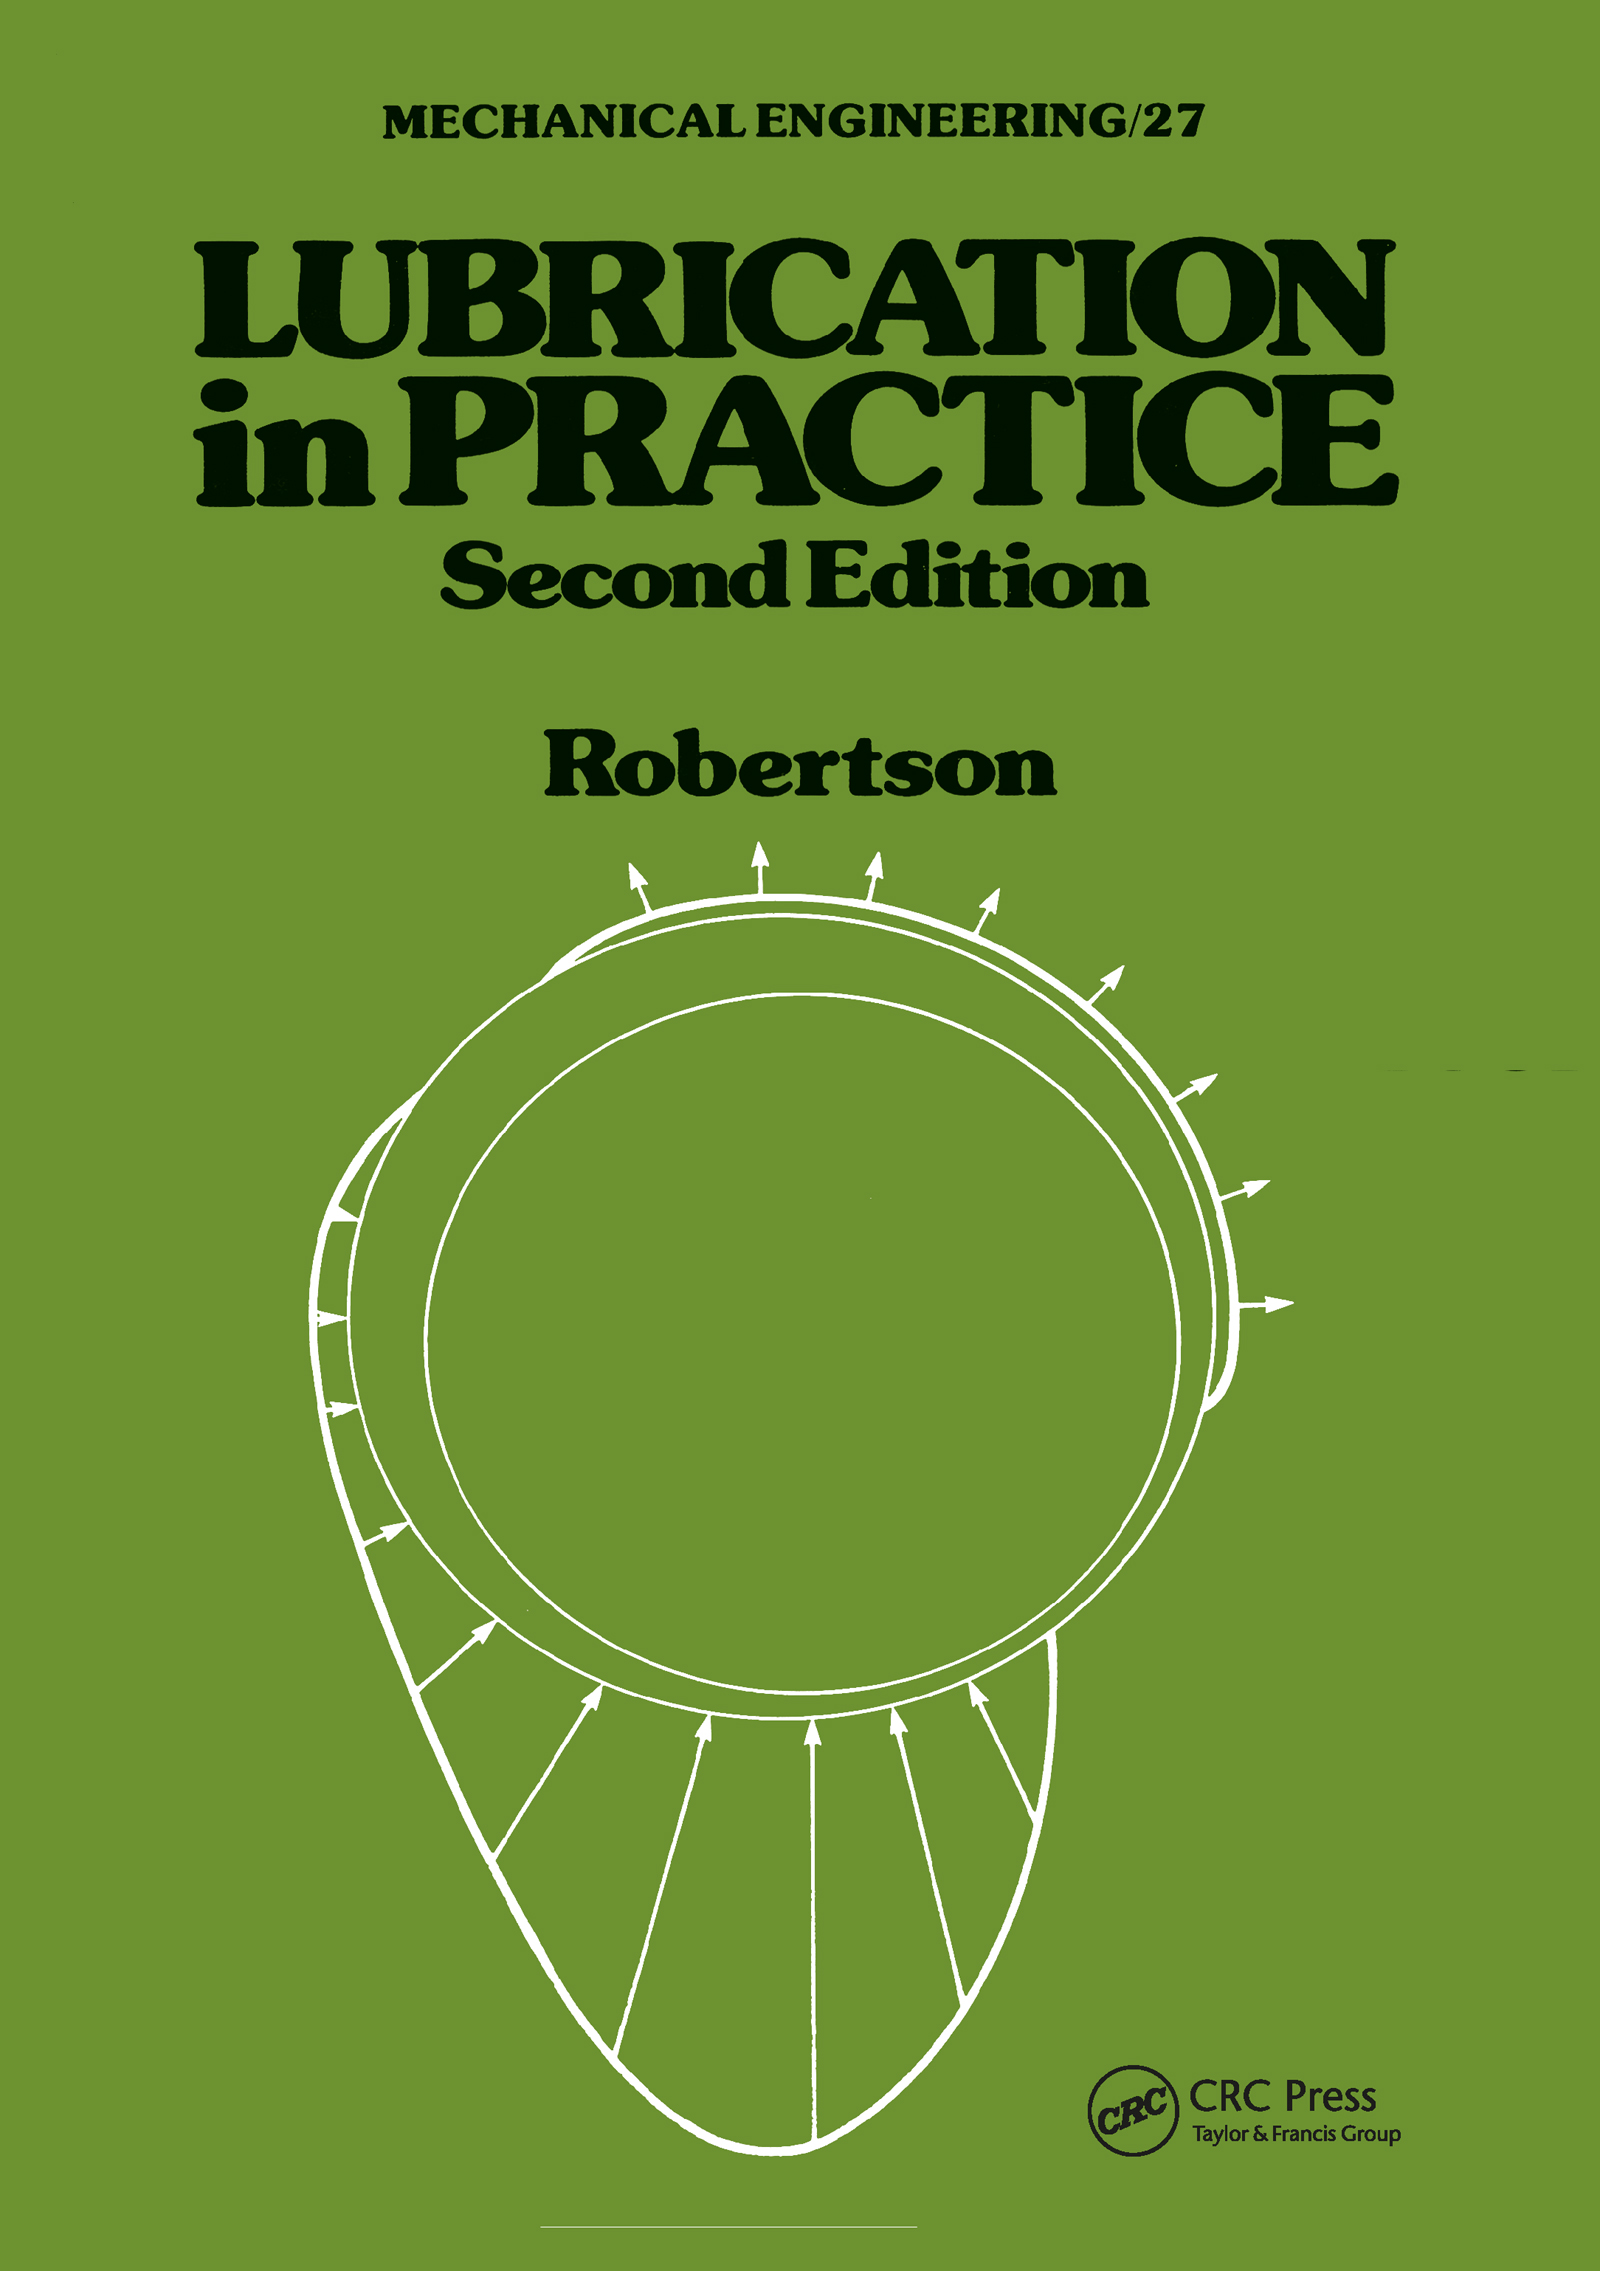 Lubrication in Practice, Second Edition